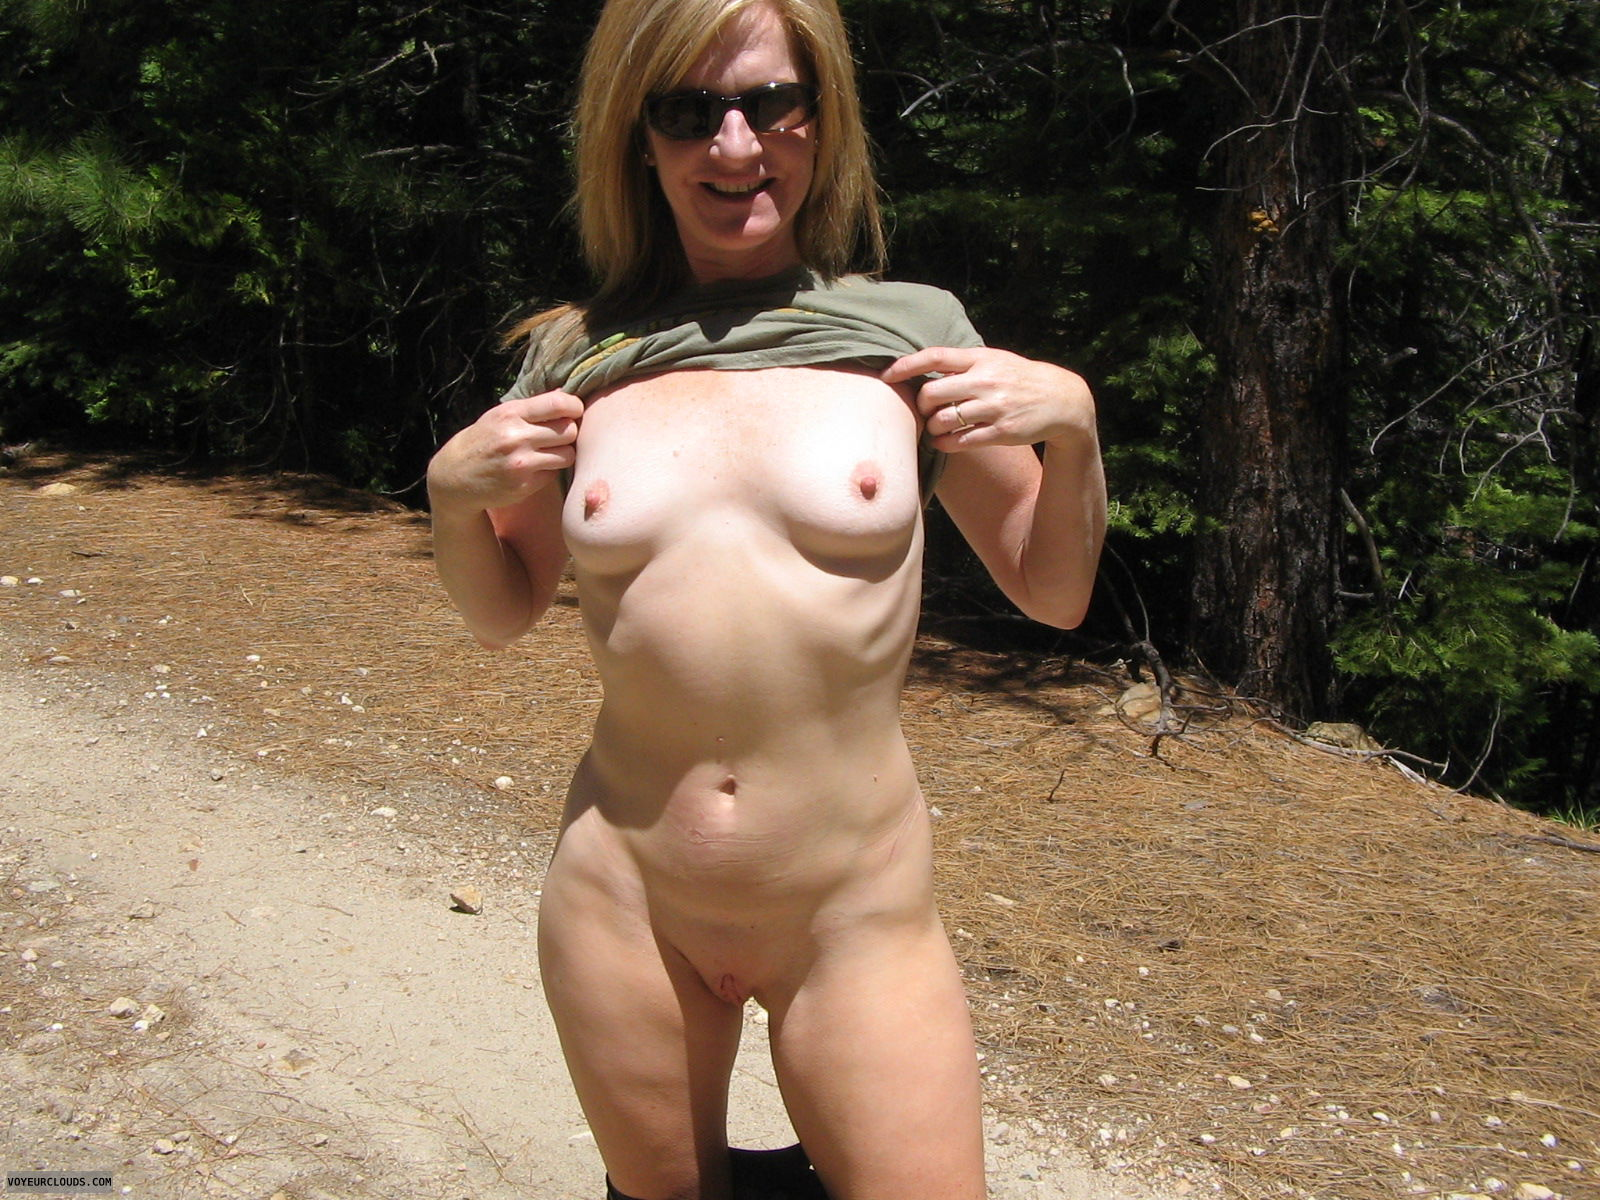 Uncensored pictures of wild amateur women